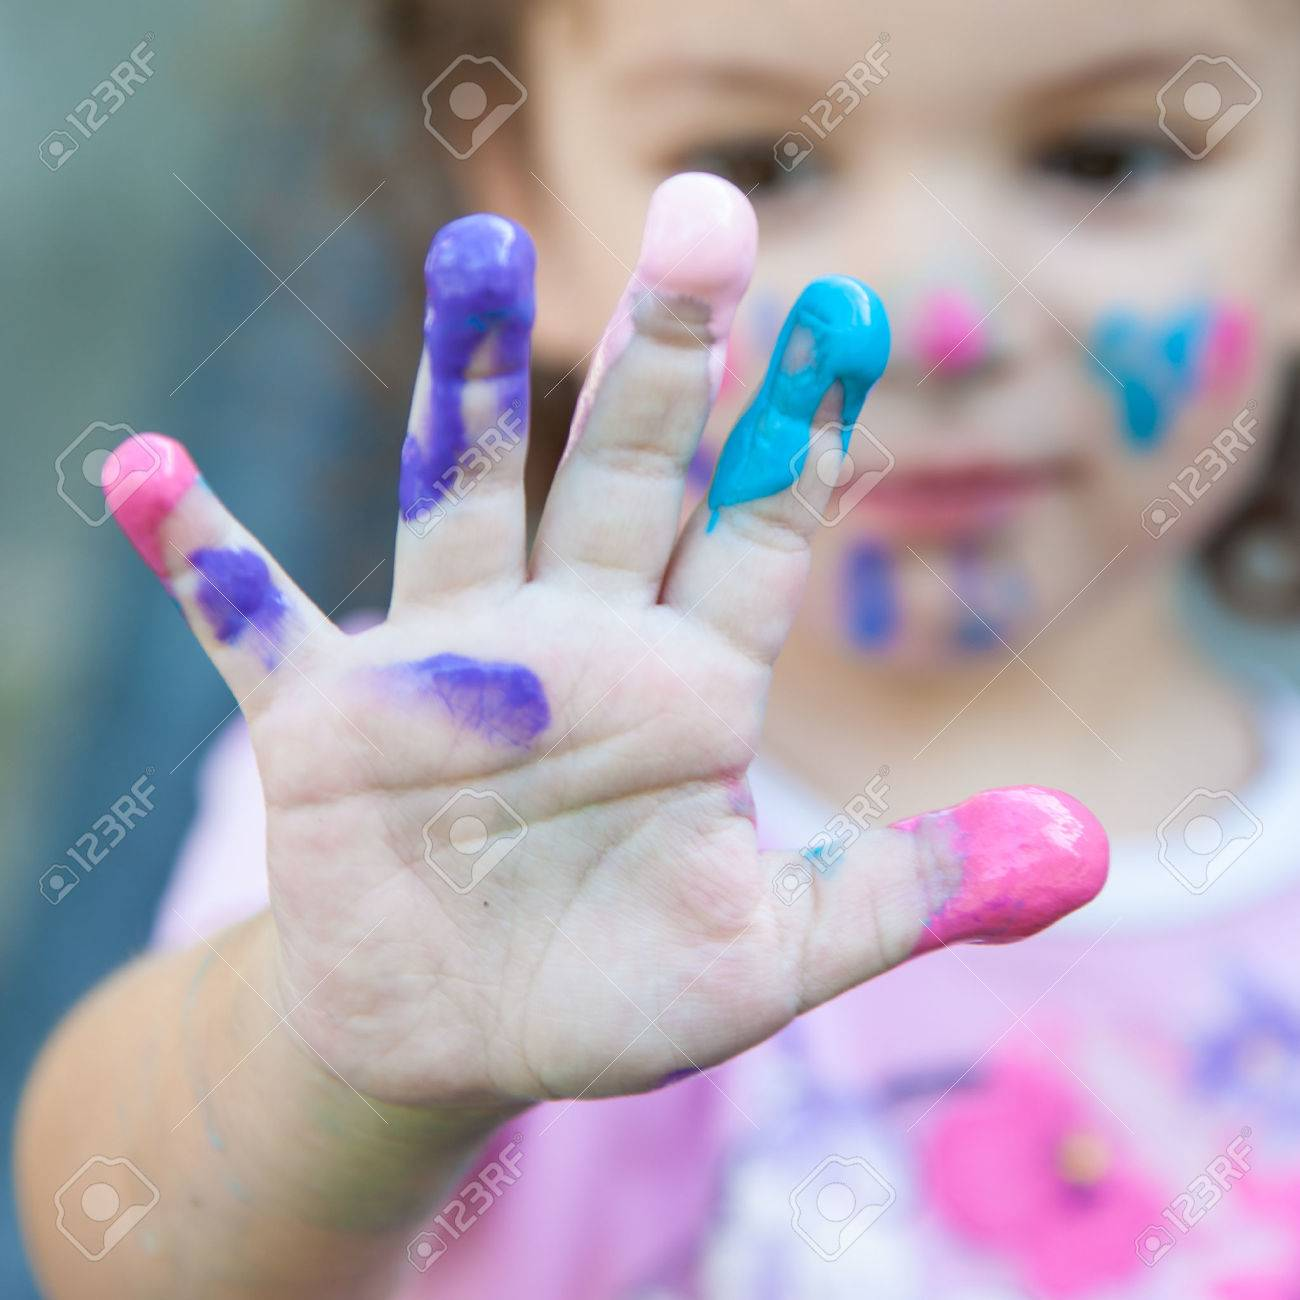 Baby girl is playing with paints outdoors Standard-Bild - 45934539